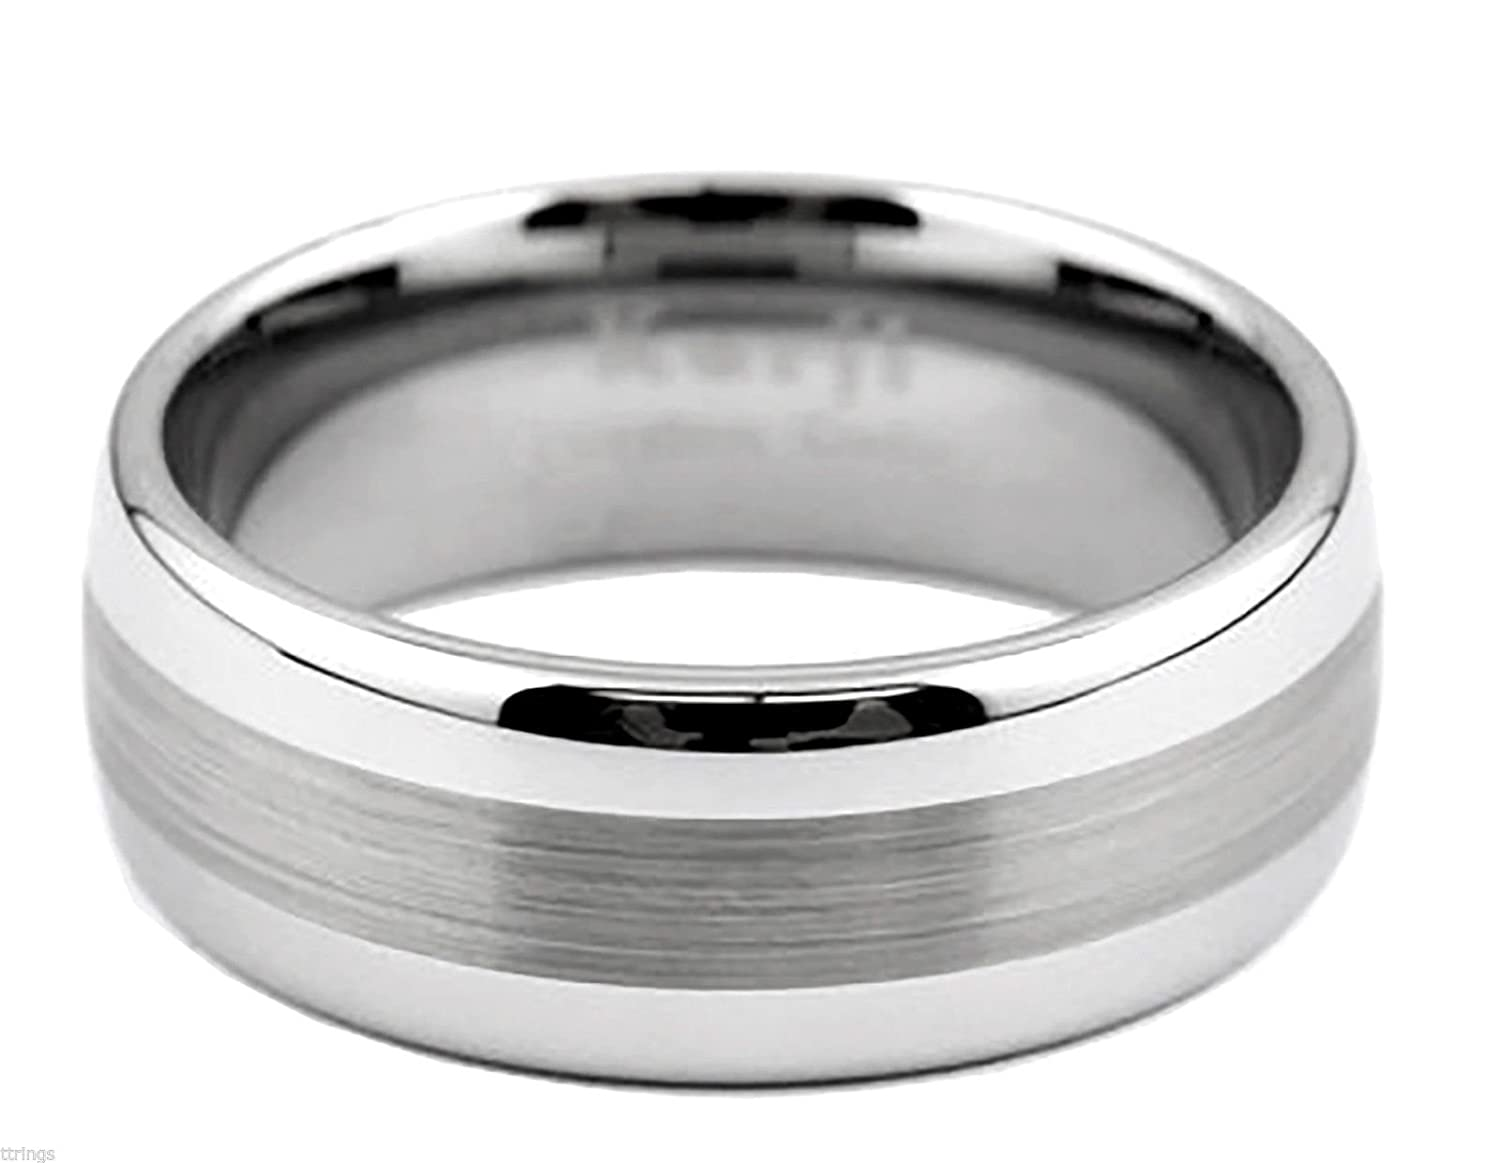 King Will Gentleman - Anillo de carburo de tungsteno para Hombre, 8 mm, Color Negro, Fibra de Carbono, para Boda: Amazon.es: Joyería